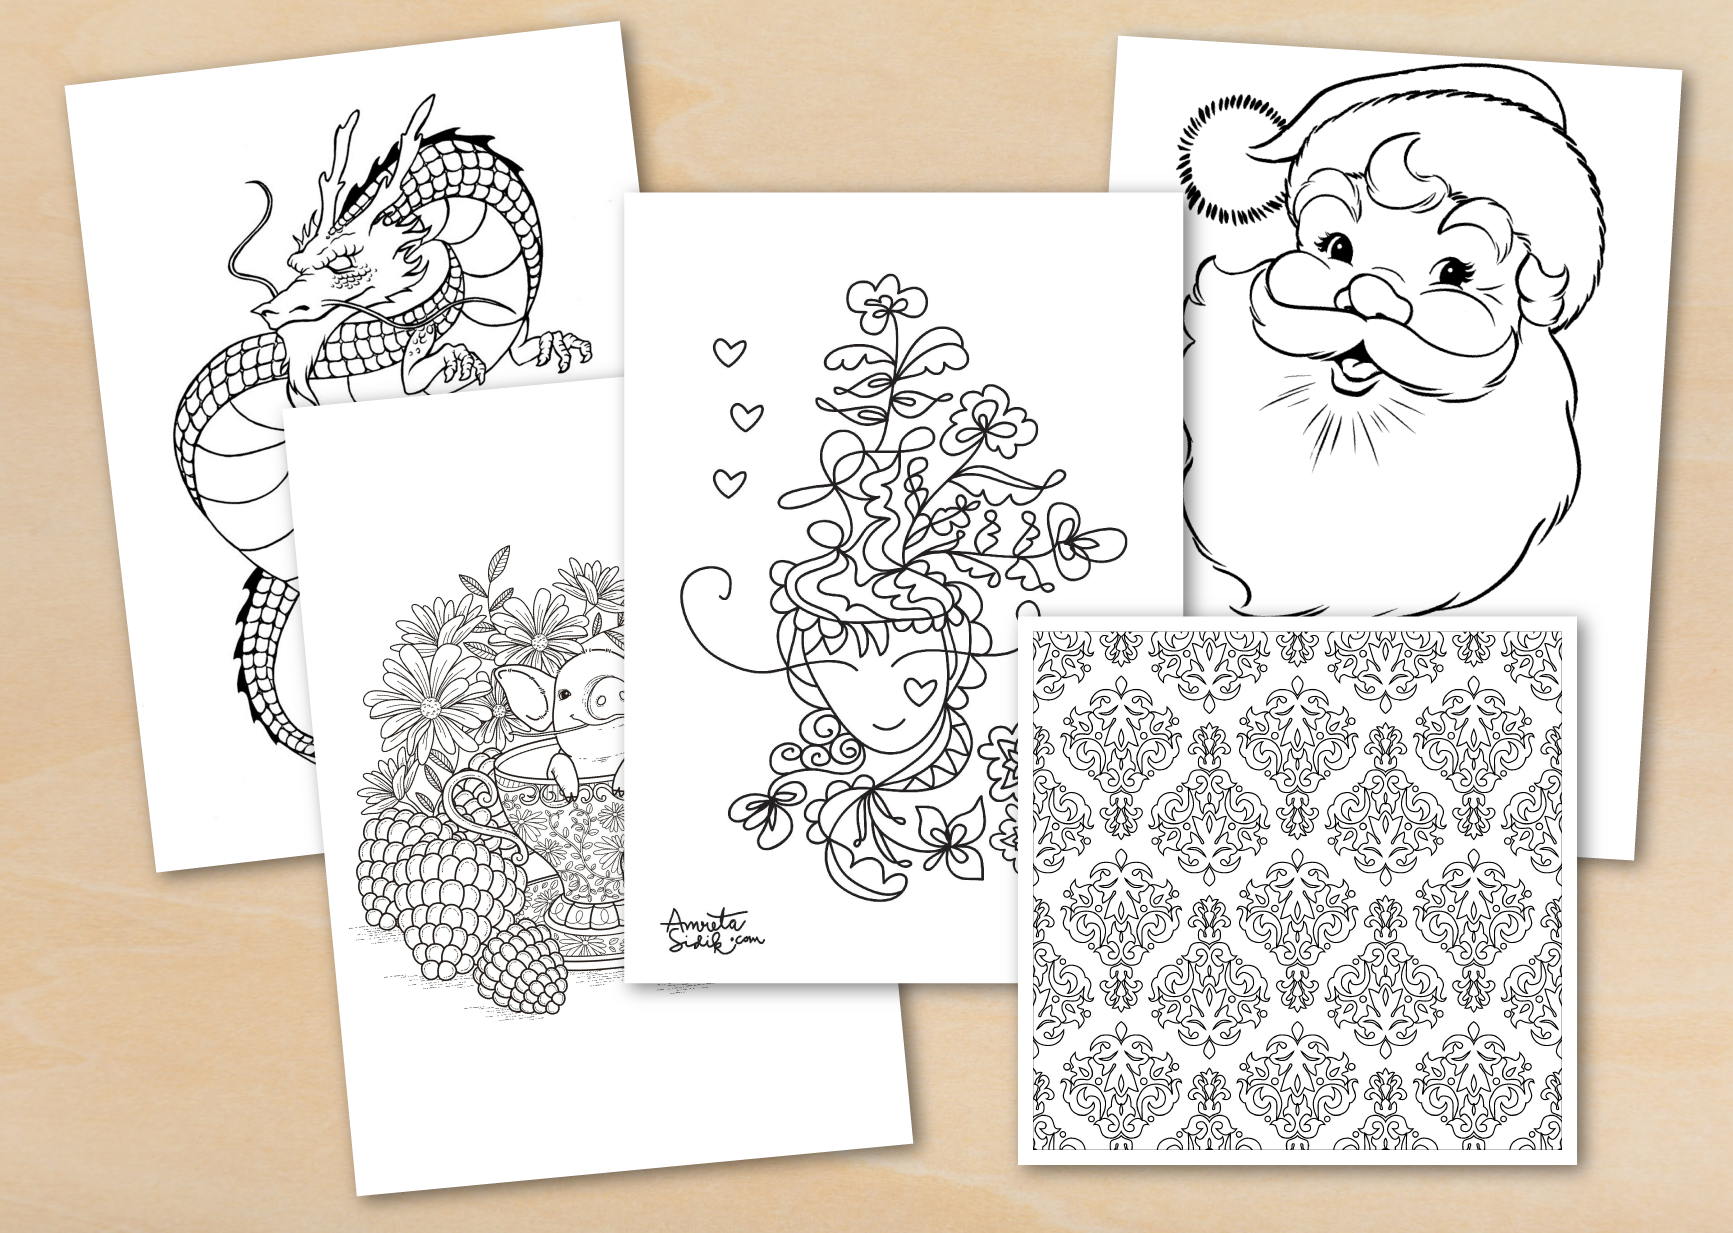 - Your Ultimate Coloring Book Design Guide